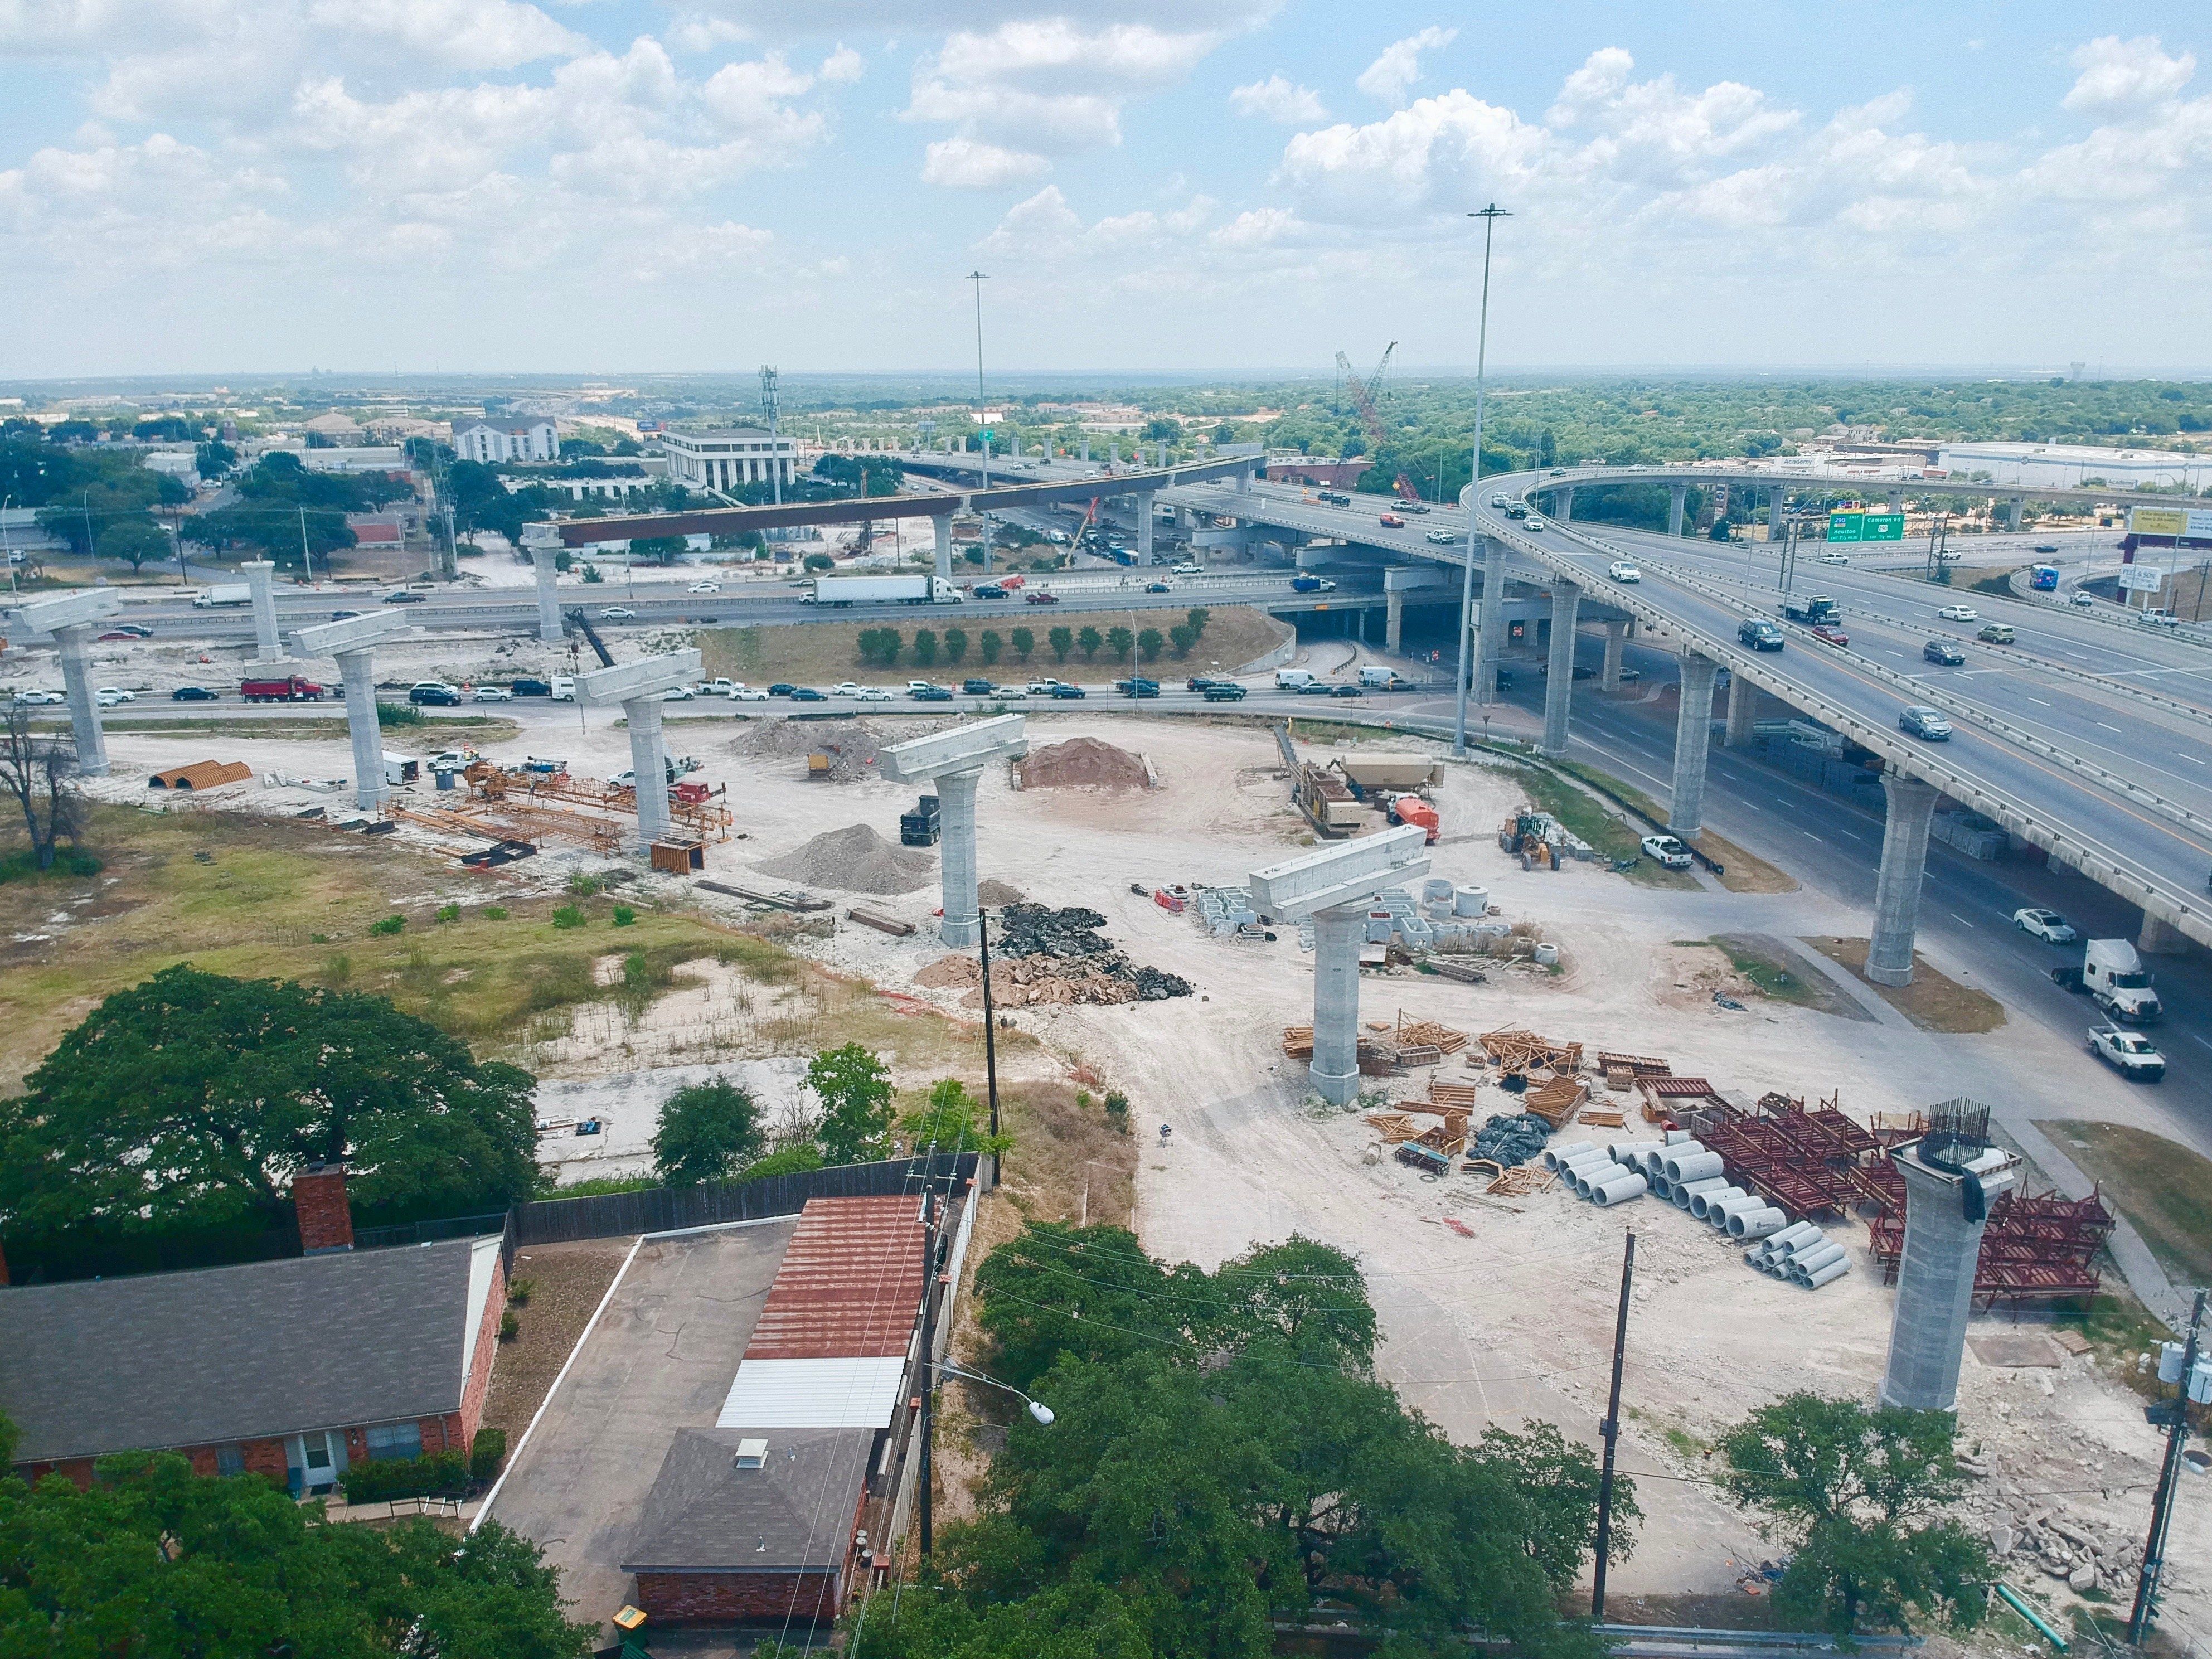 Southbound I-35 to southbound US 183 flyover progress – August 2019